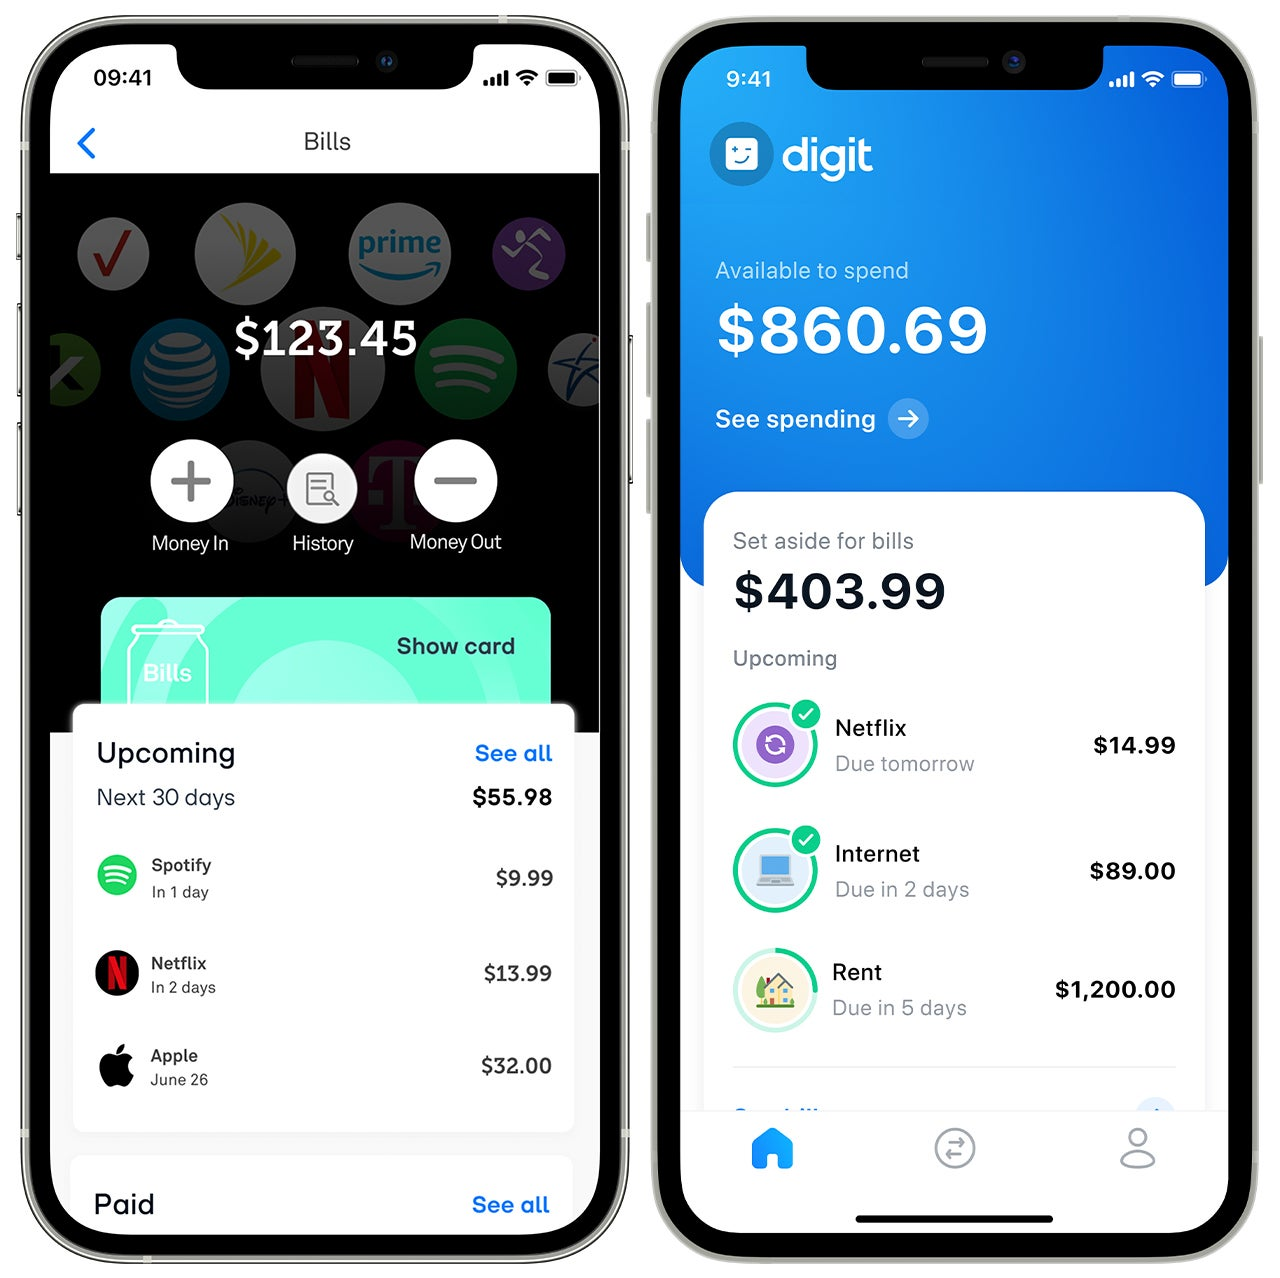 Screenshots of the Digit and Douugh apps